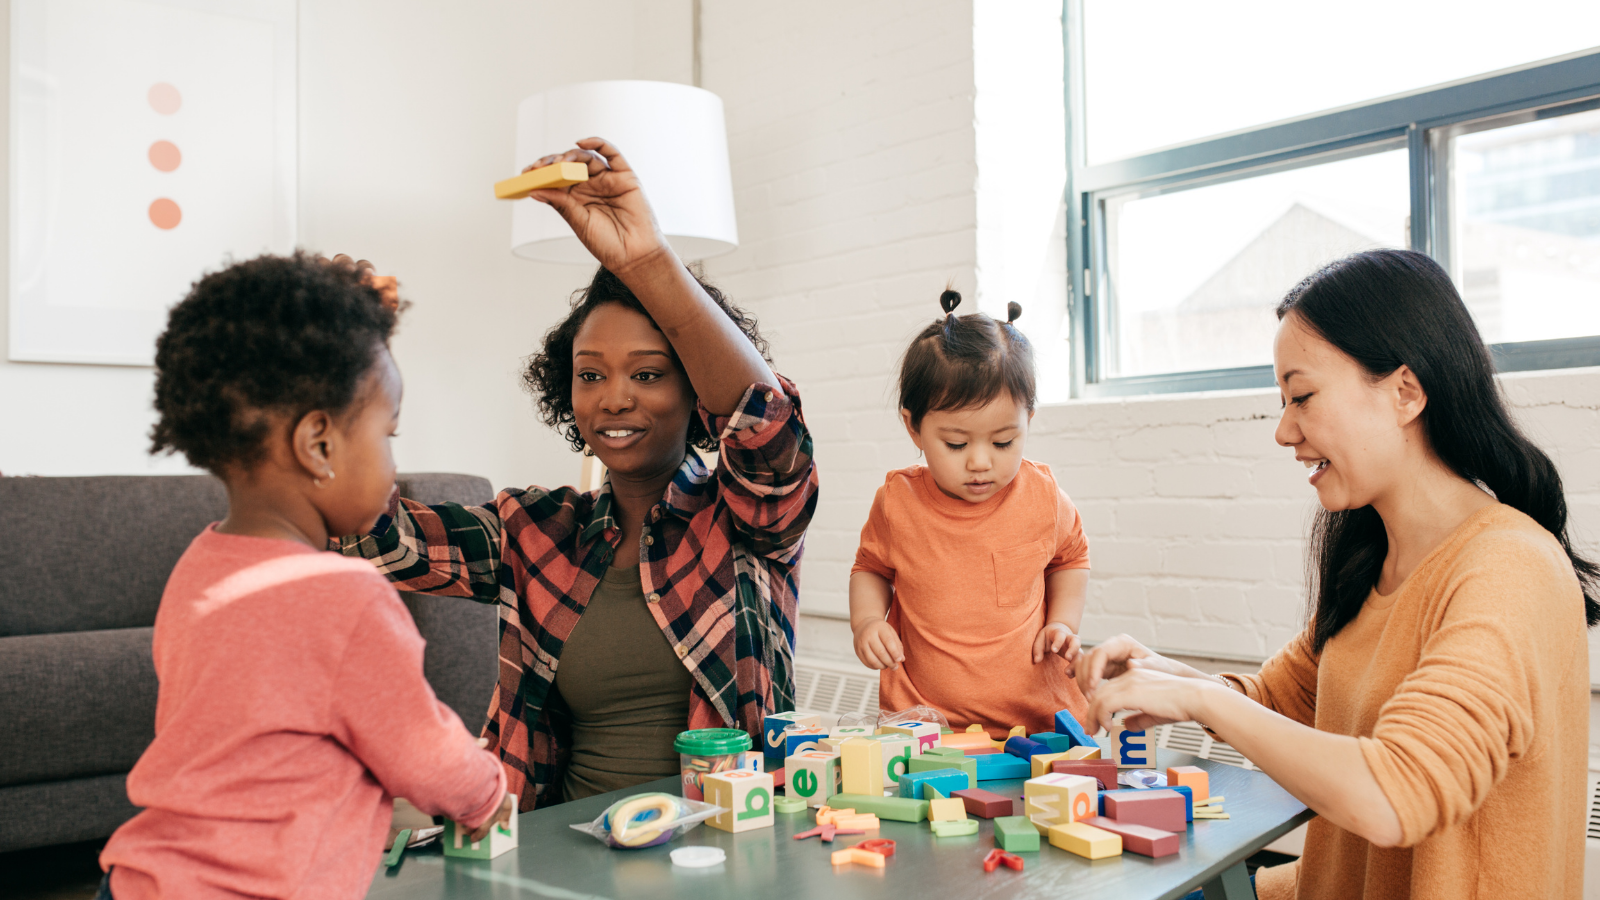 10 ways to boost family participation at your childcare center or preschool